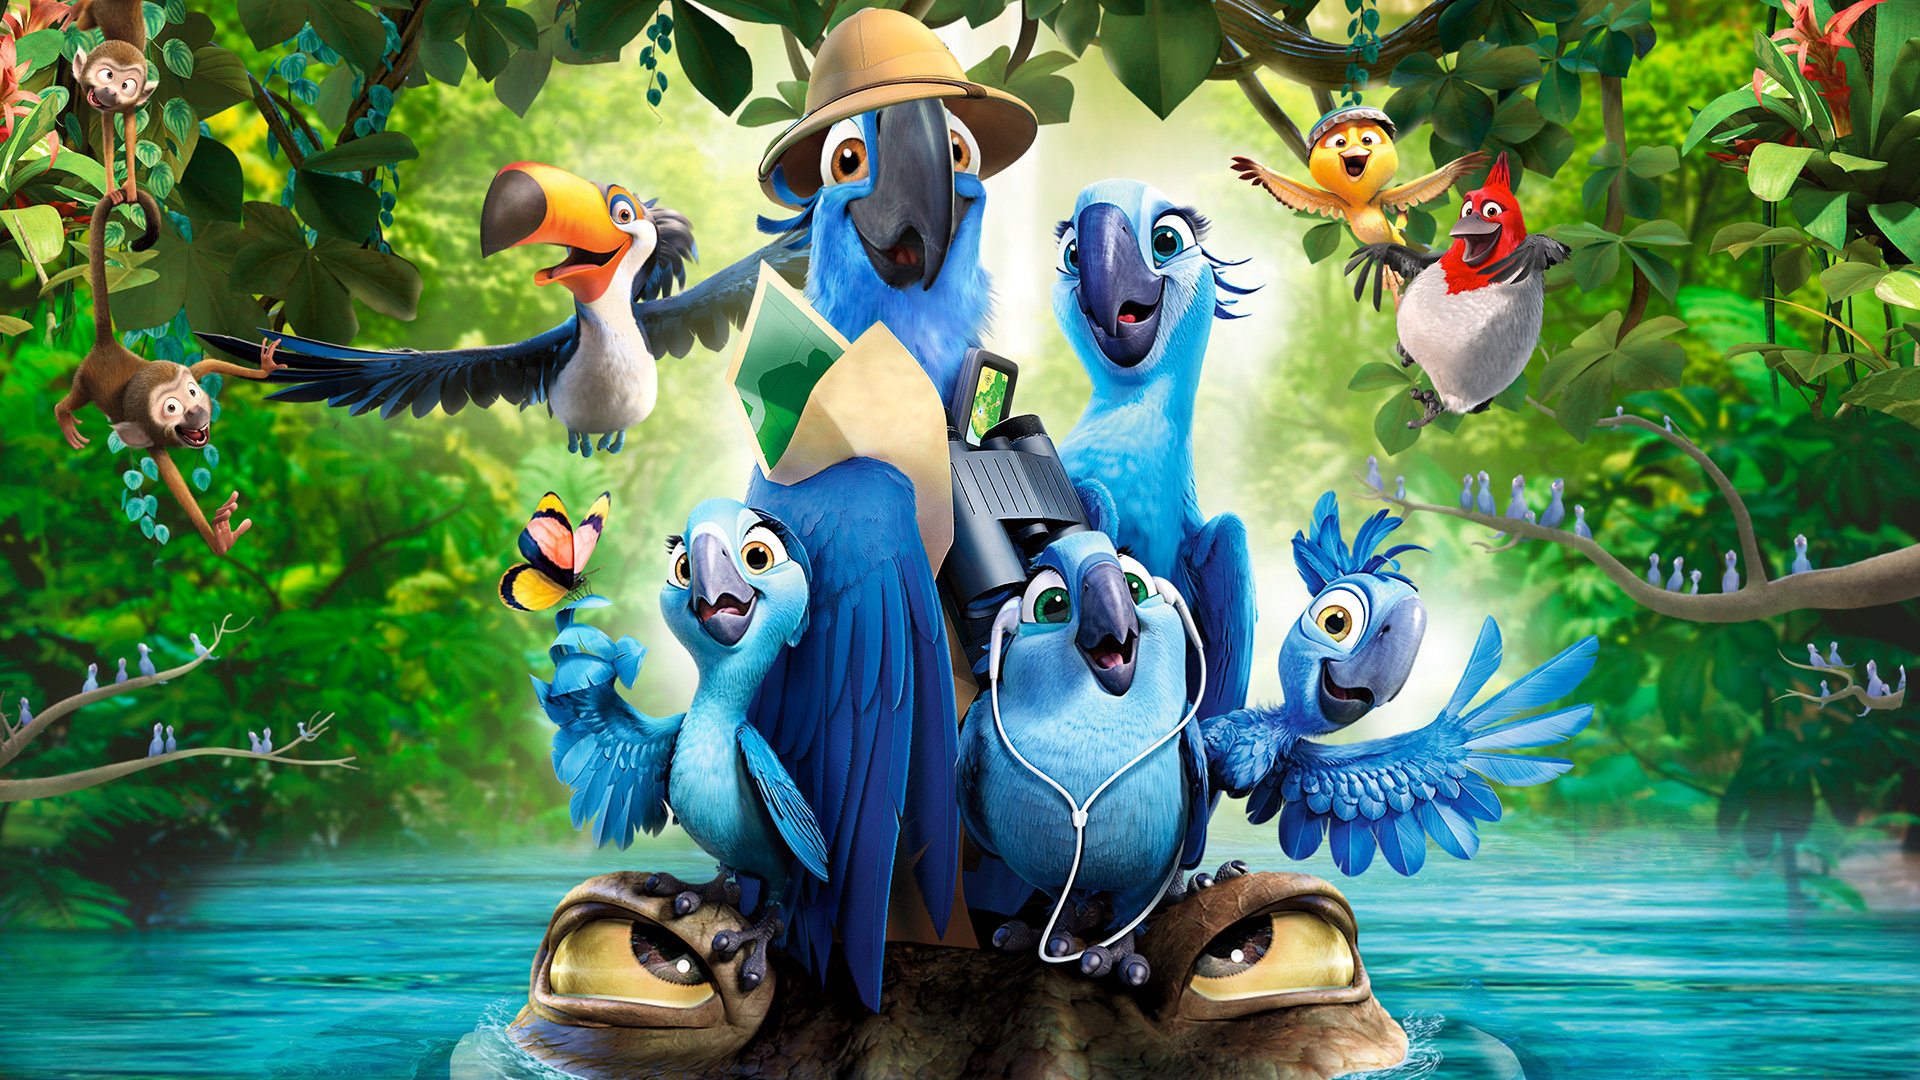 download full hd rio 2 computer background id:307552 for free